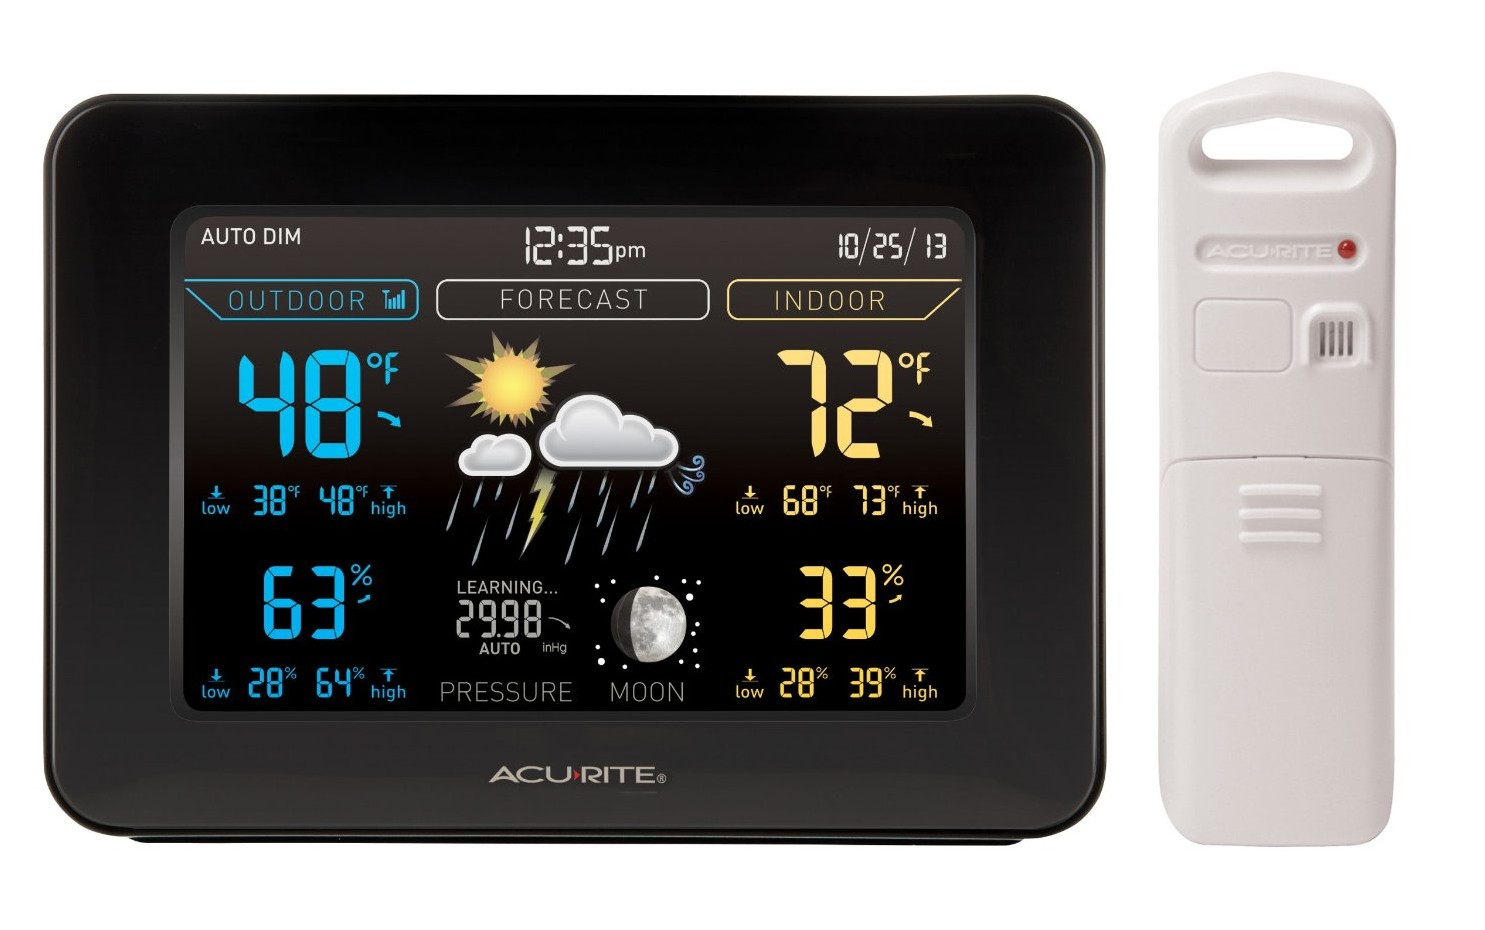 The Best Indoor Outdoor Thermometers for 2016: Our Reviews and Ratings #069BC5